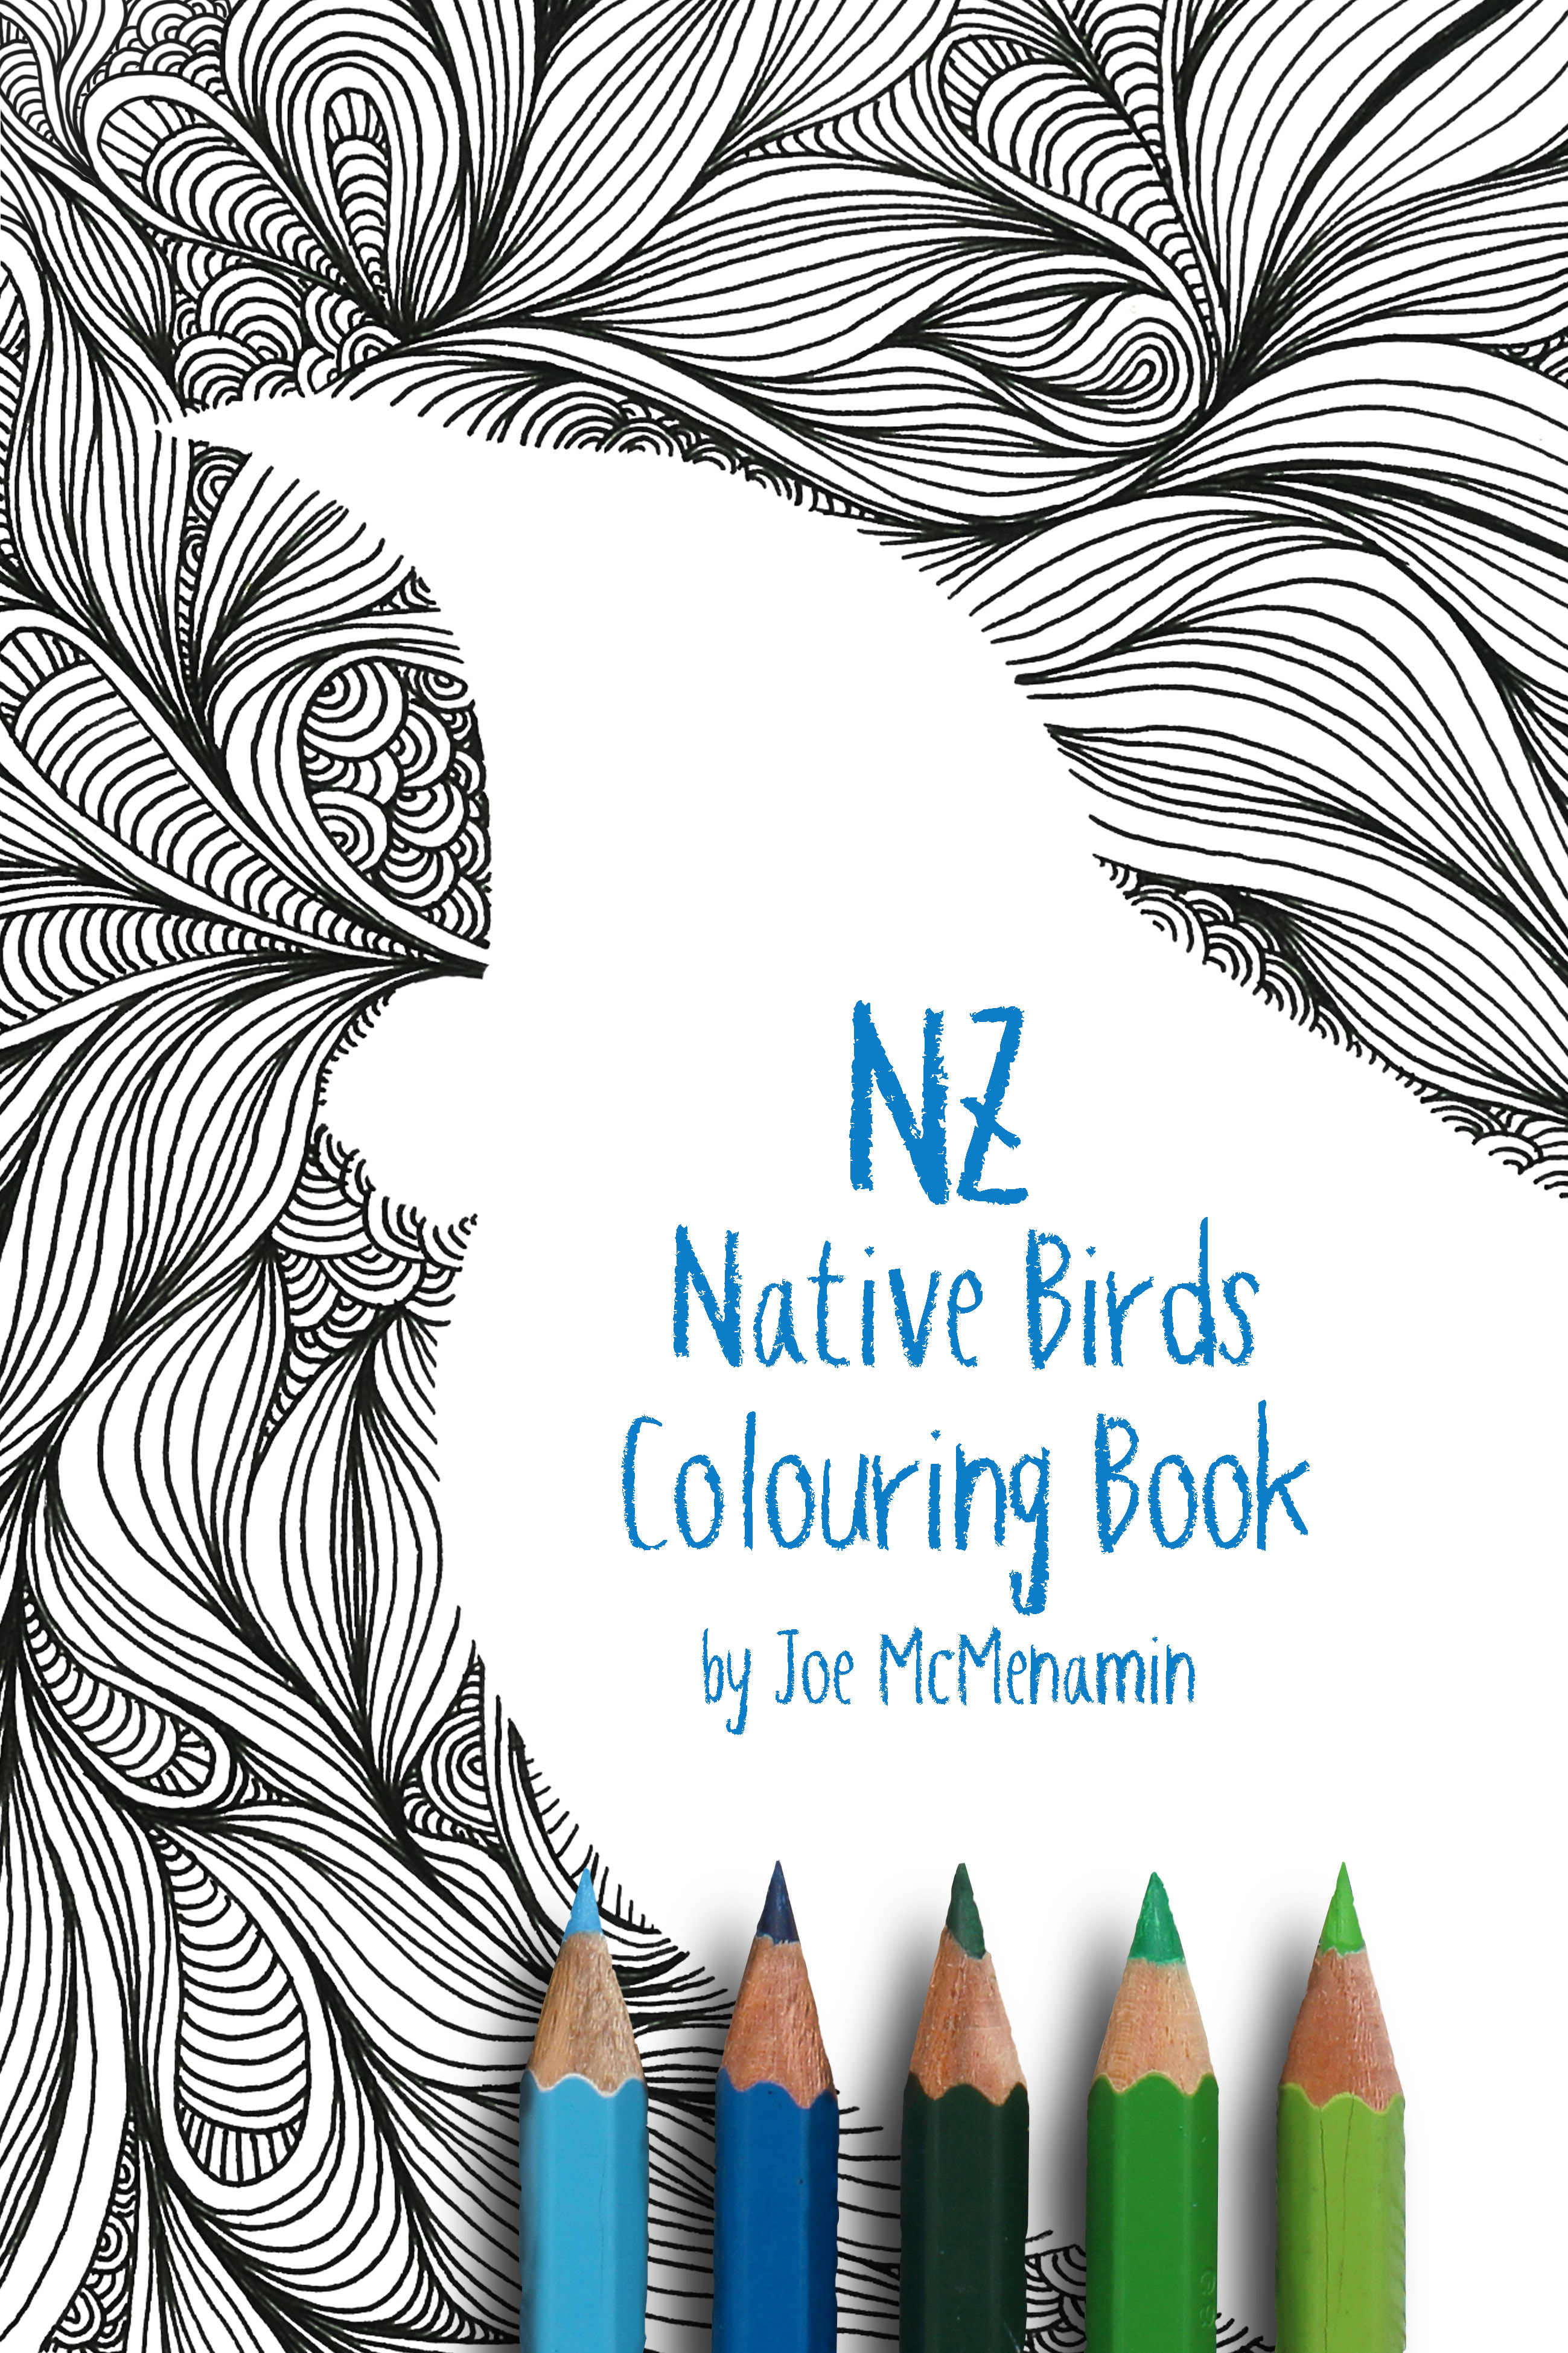 The enchanted forest colouring book nz - The Enchanted Forest Colouring Book Nz 50